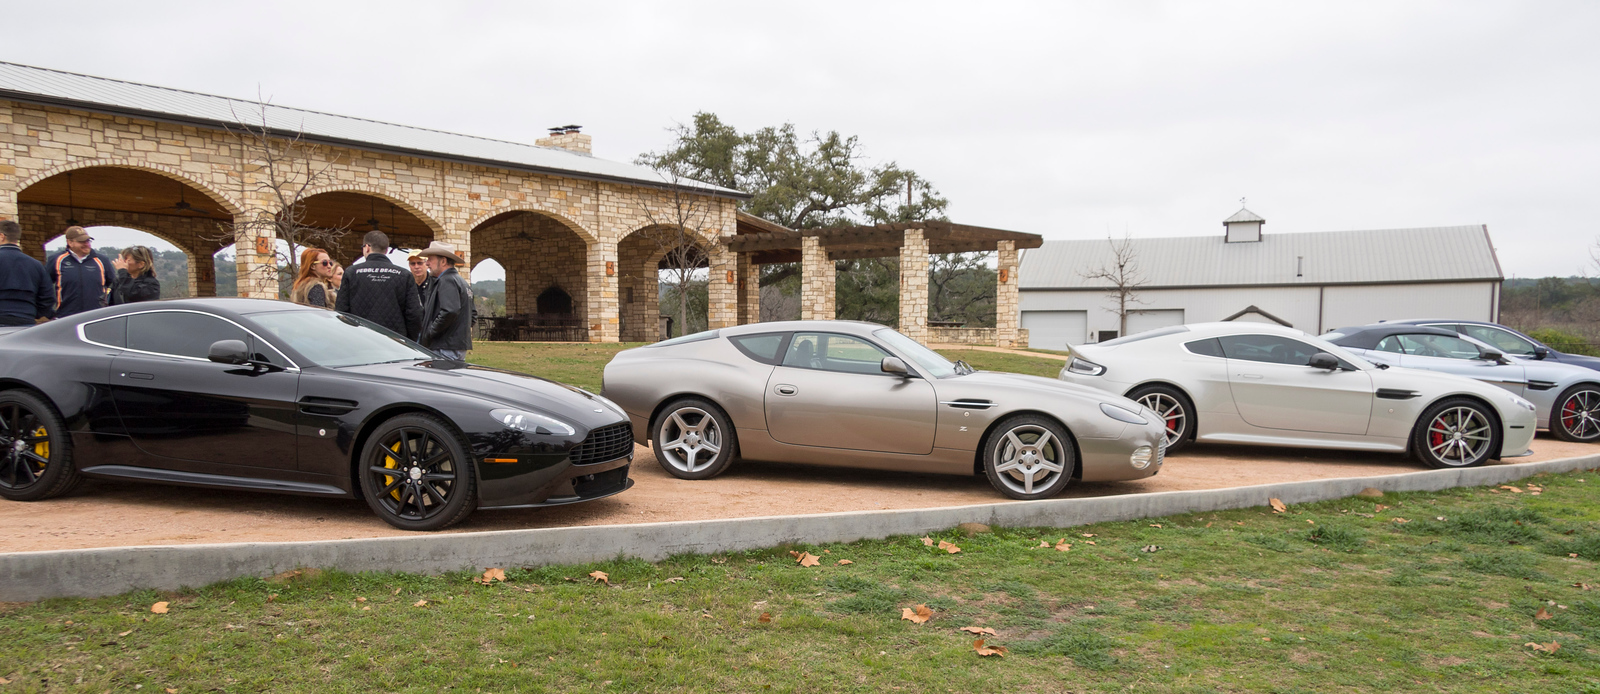 aston martin owners club texas and red river region